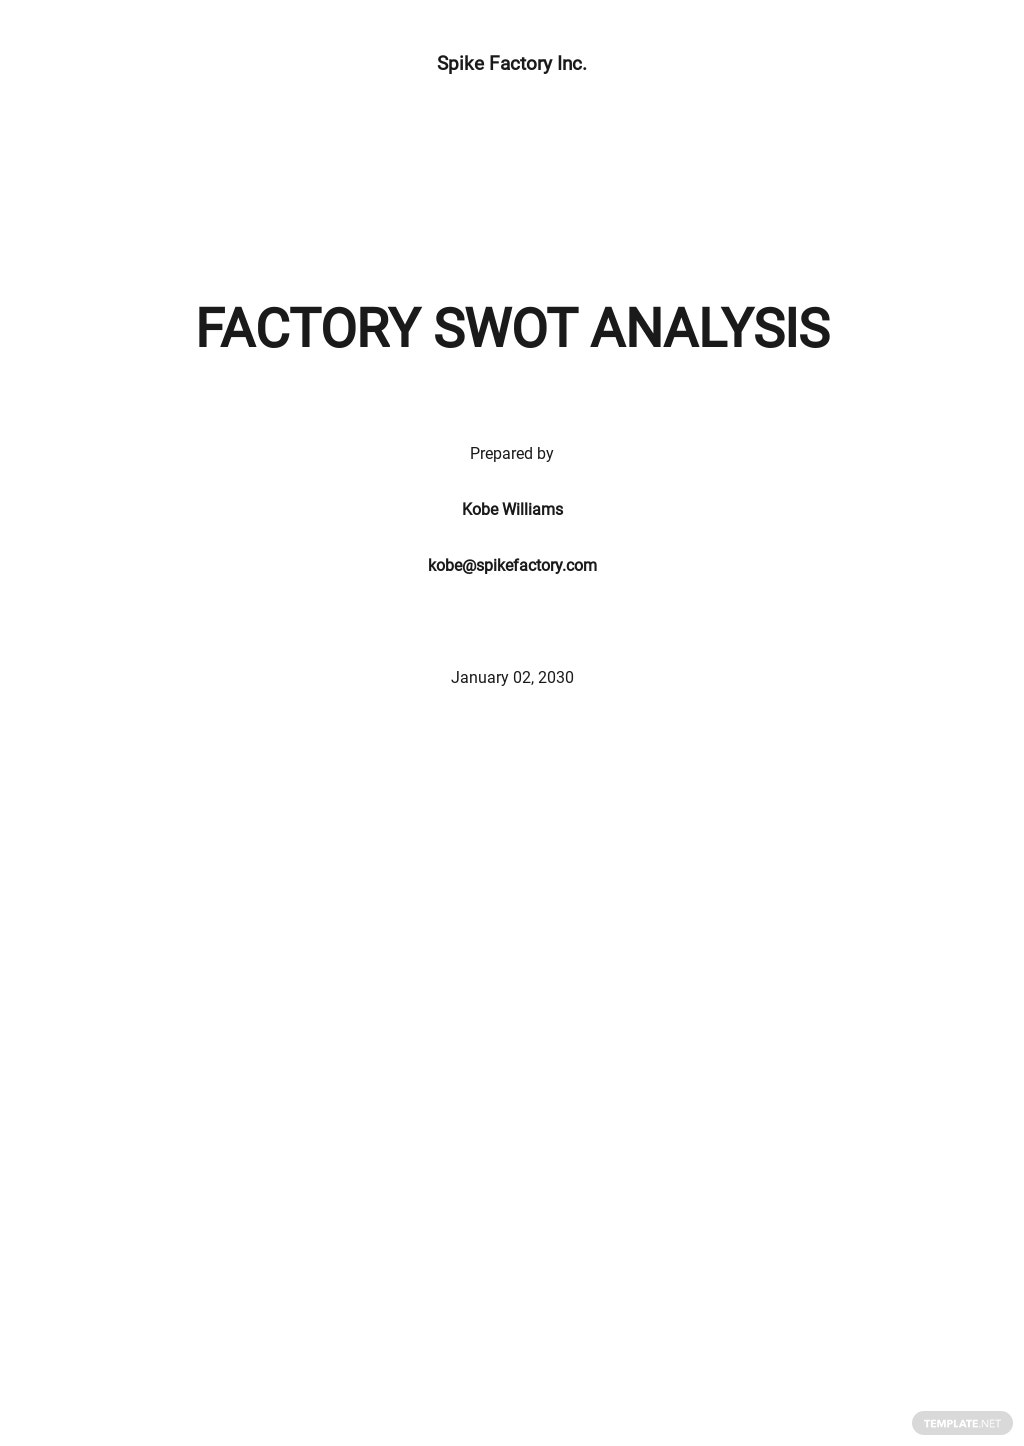 Factory Swot Analysis Template